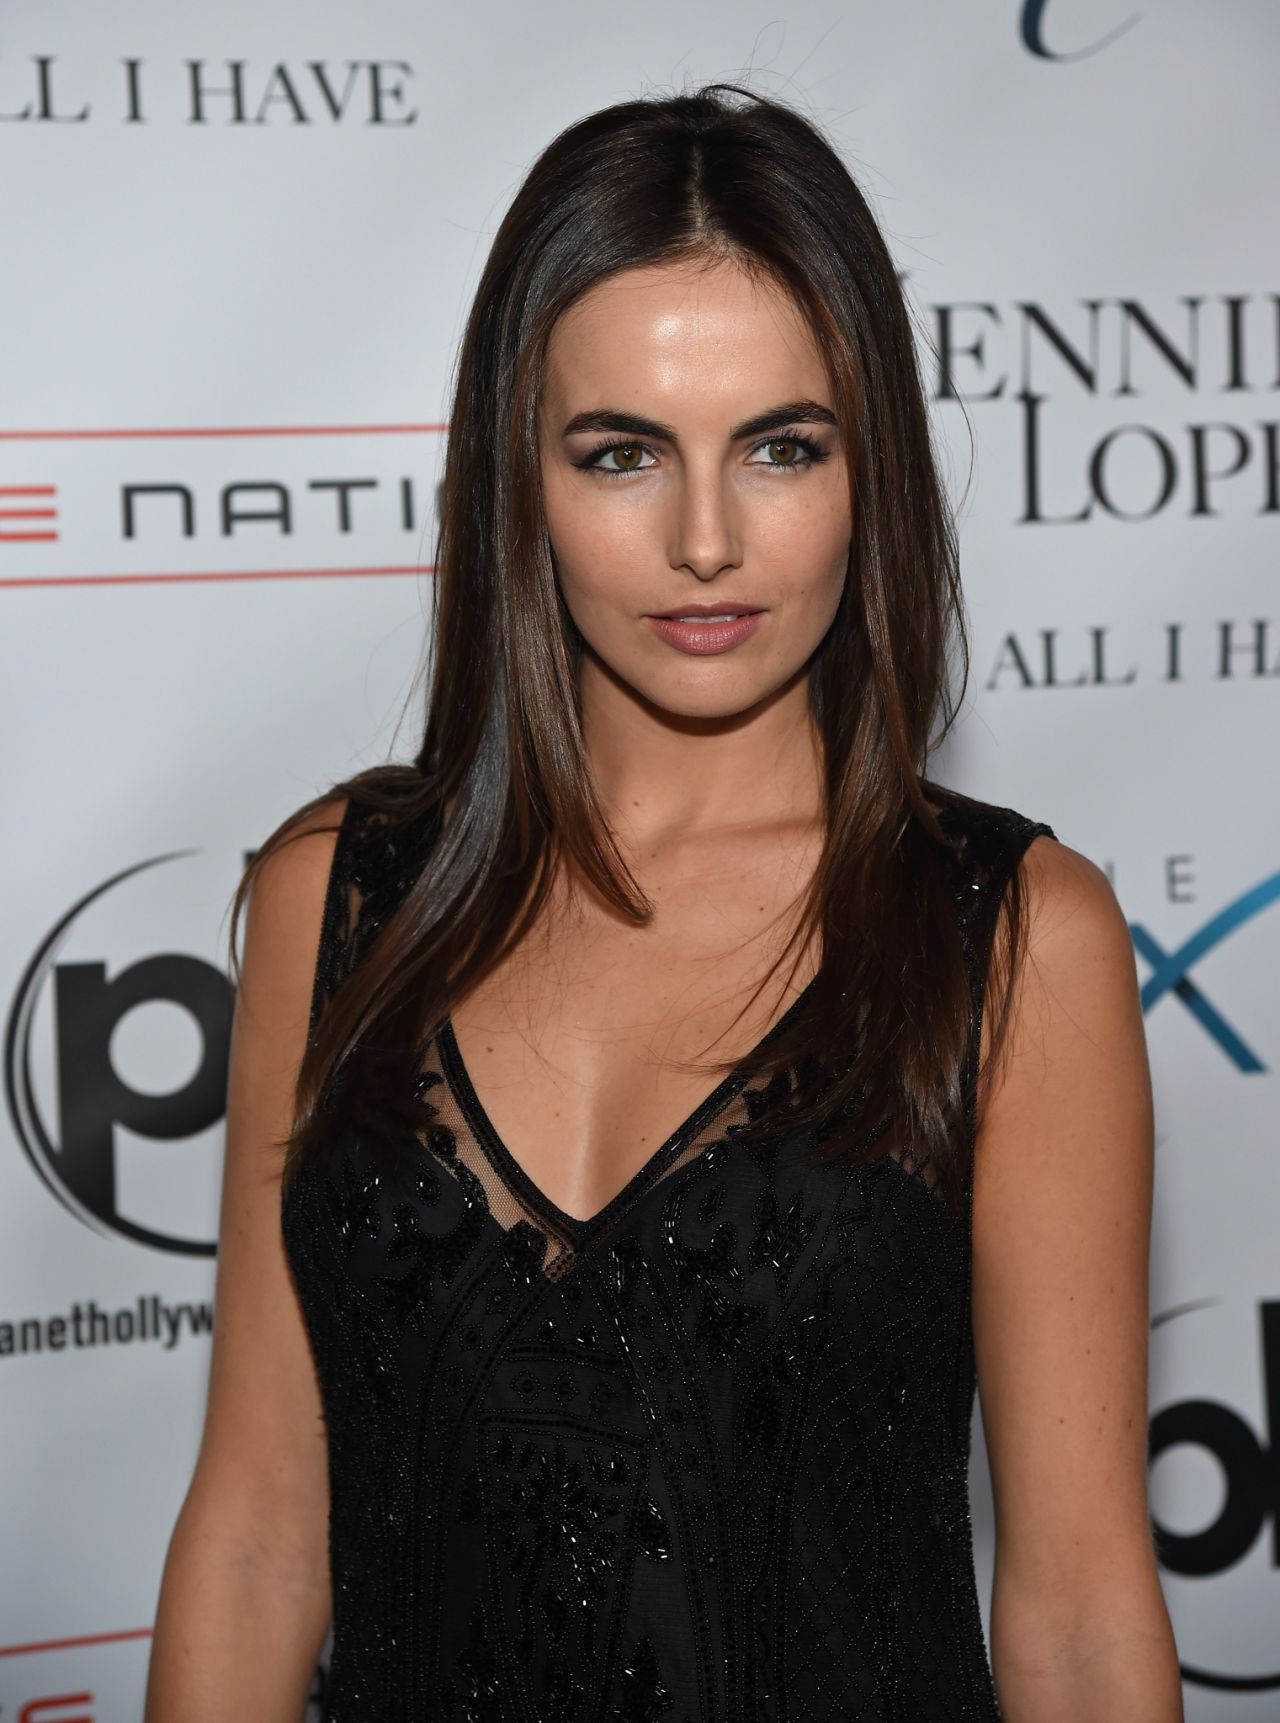 camilla-belle-jennifer-lopez-all-i-have-residency-launch-in-las-vegas-january-20-2016-1